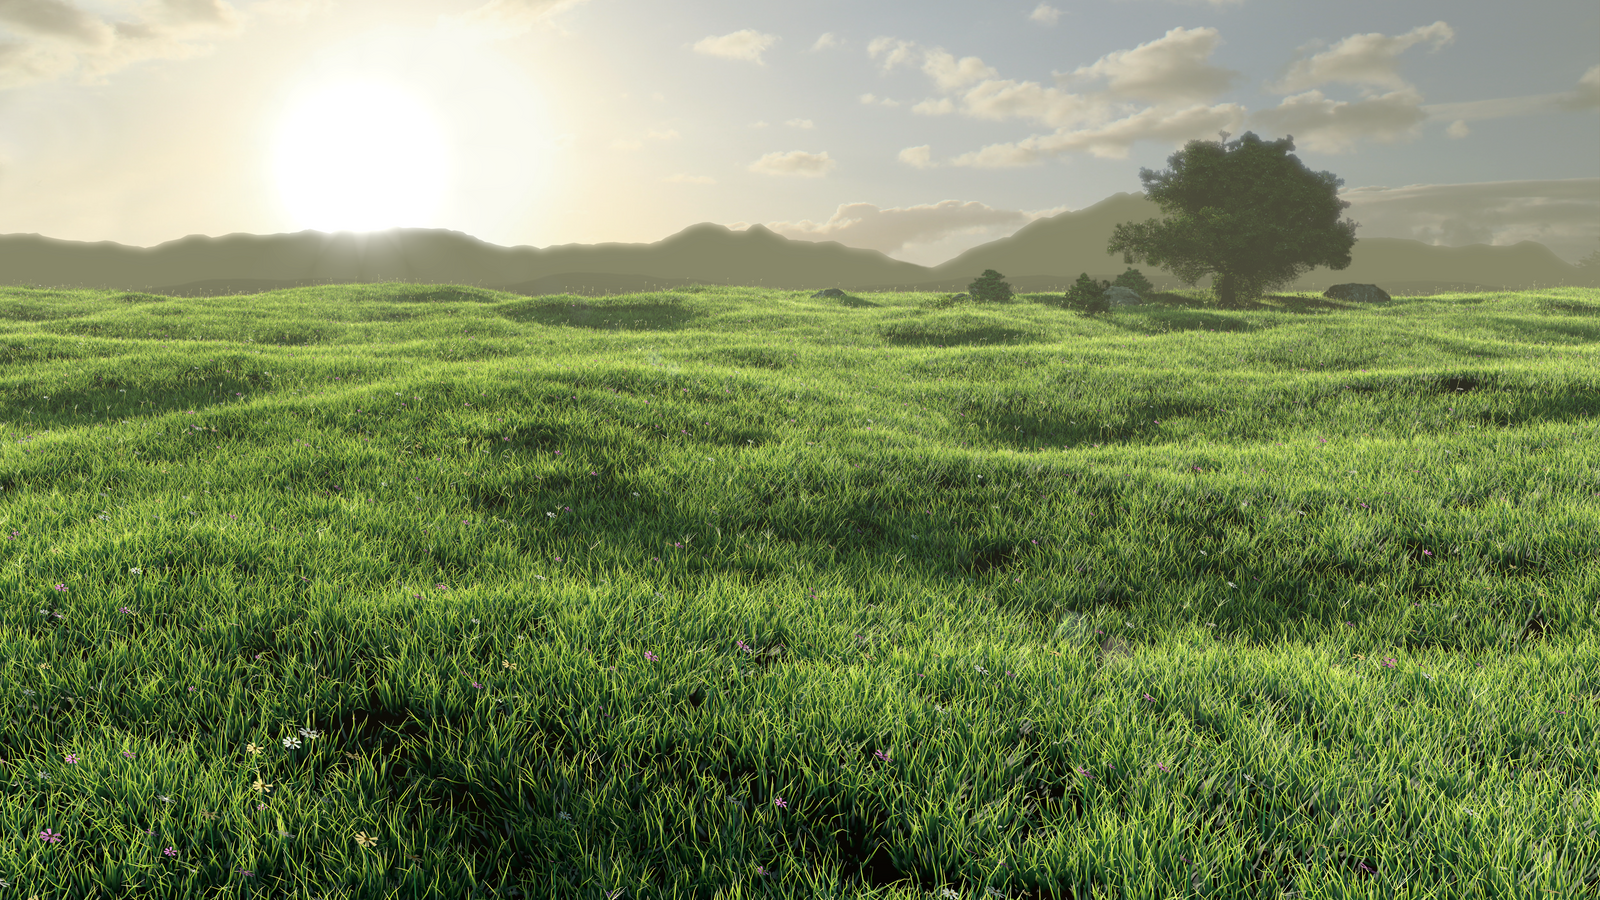 Grass Field by S0u1Seeker on DeviantArt